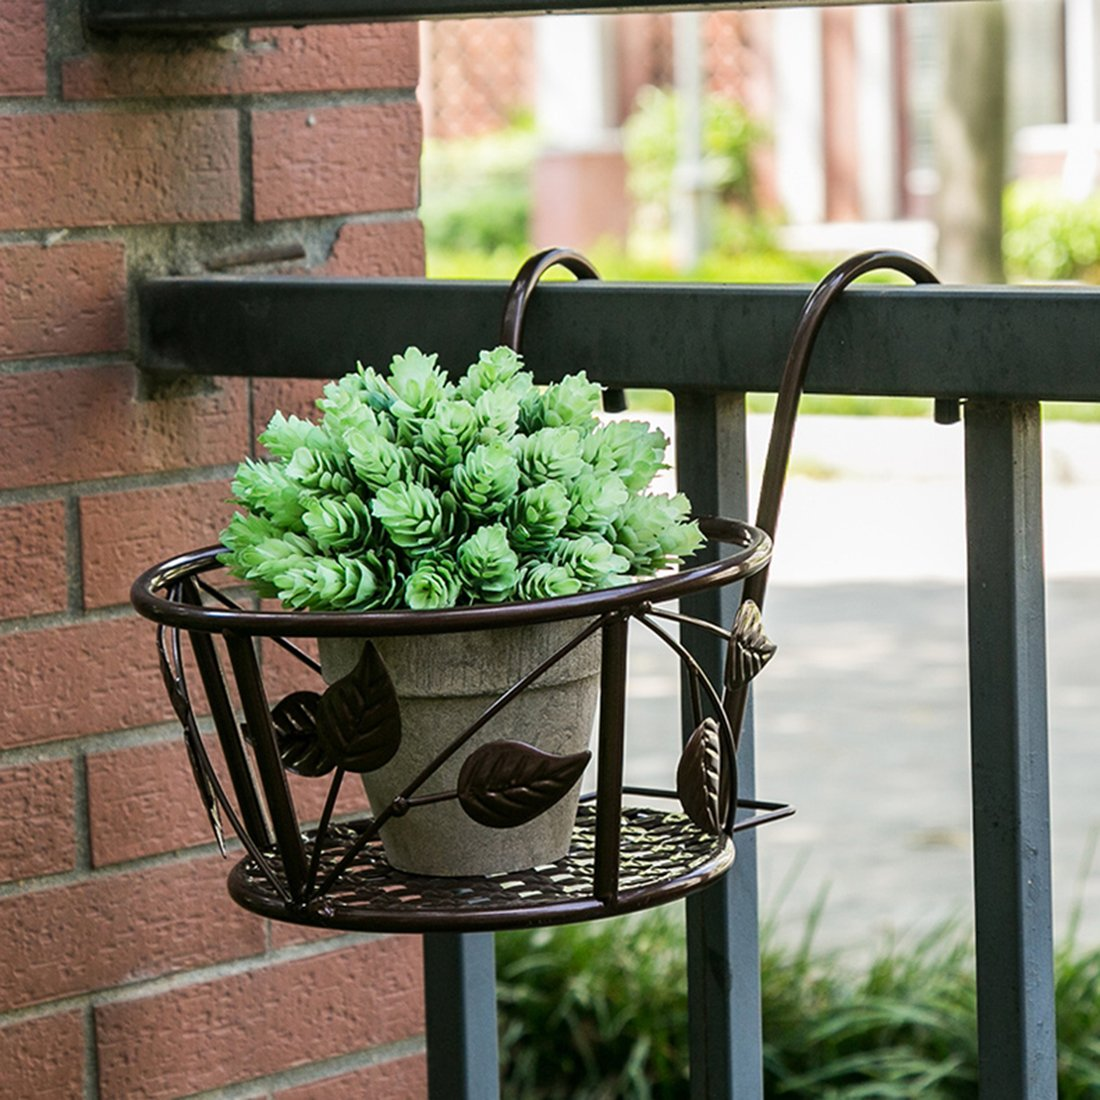 Tosnail 3 Pack Iron Art Hanging Baskets Flower Pot Holder - Great Patio Balcony Porch Fence - Brown by Tosnail (Image #2)